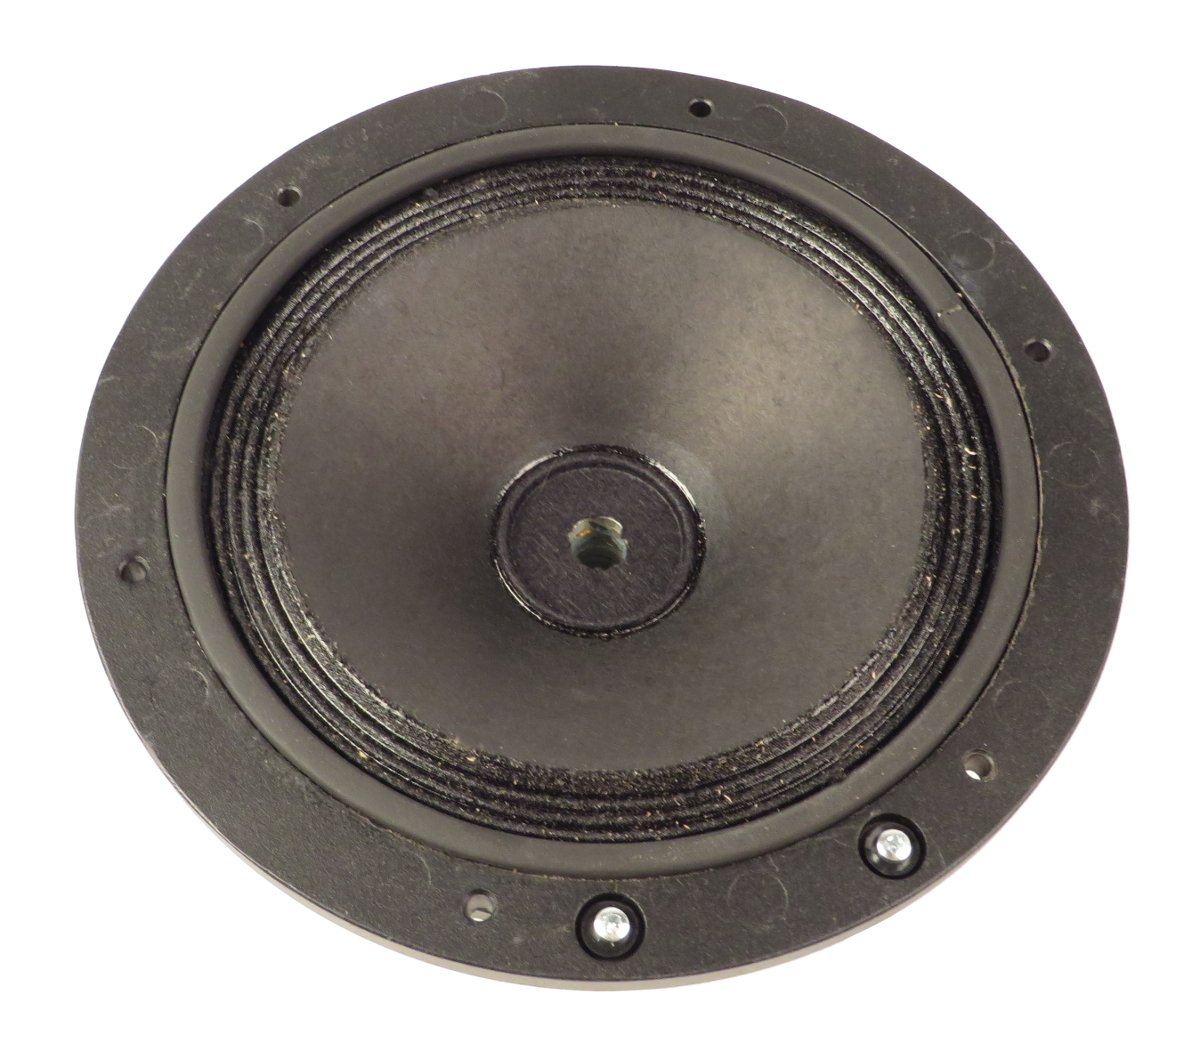 "6.5"" Mid Speaker for TFL-760"